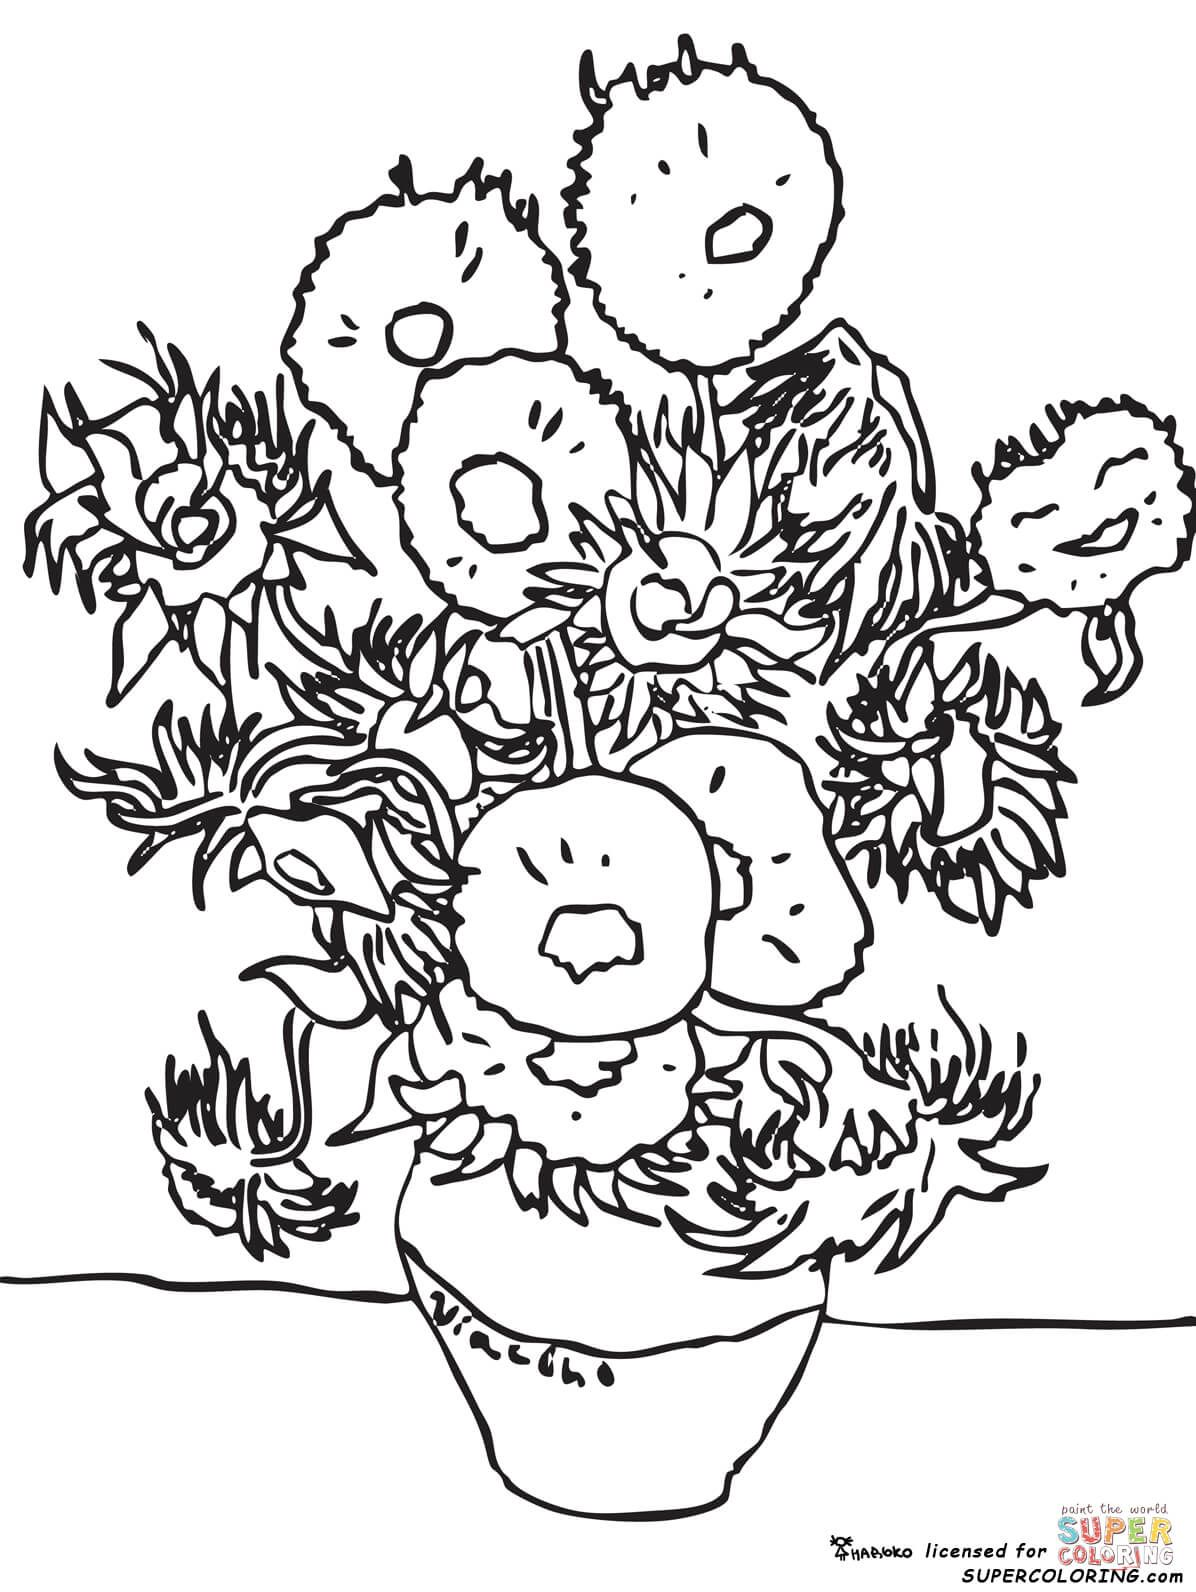 Sunflowers By Vincent Van Gogh Coloring Page From Vincent